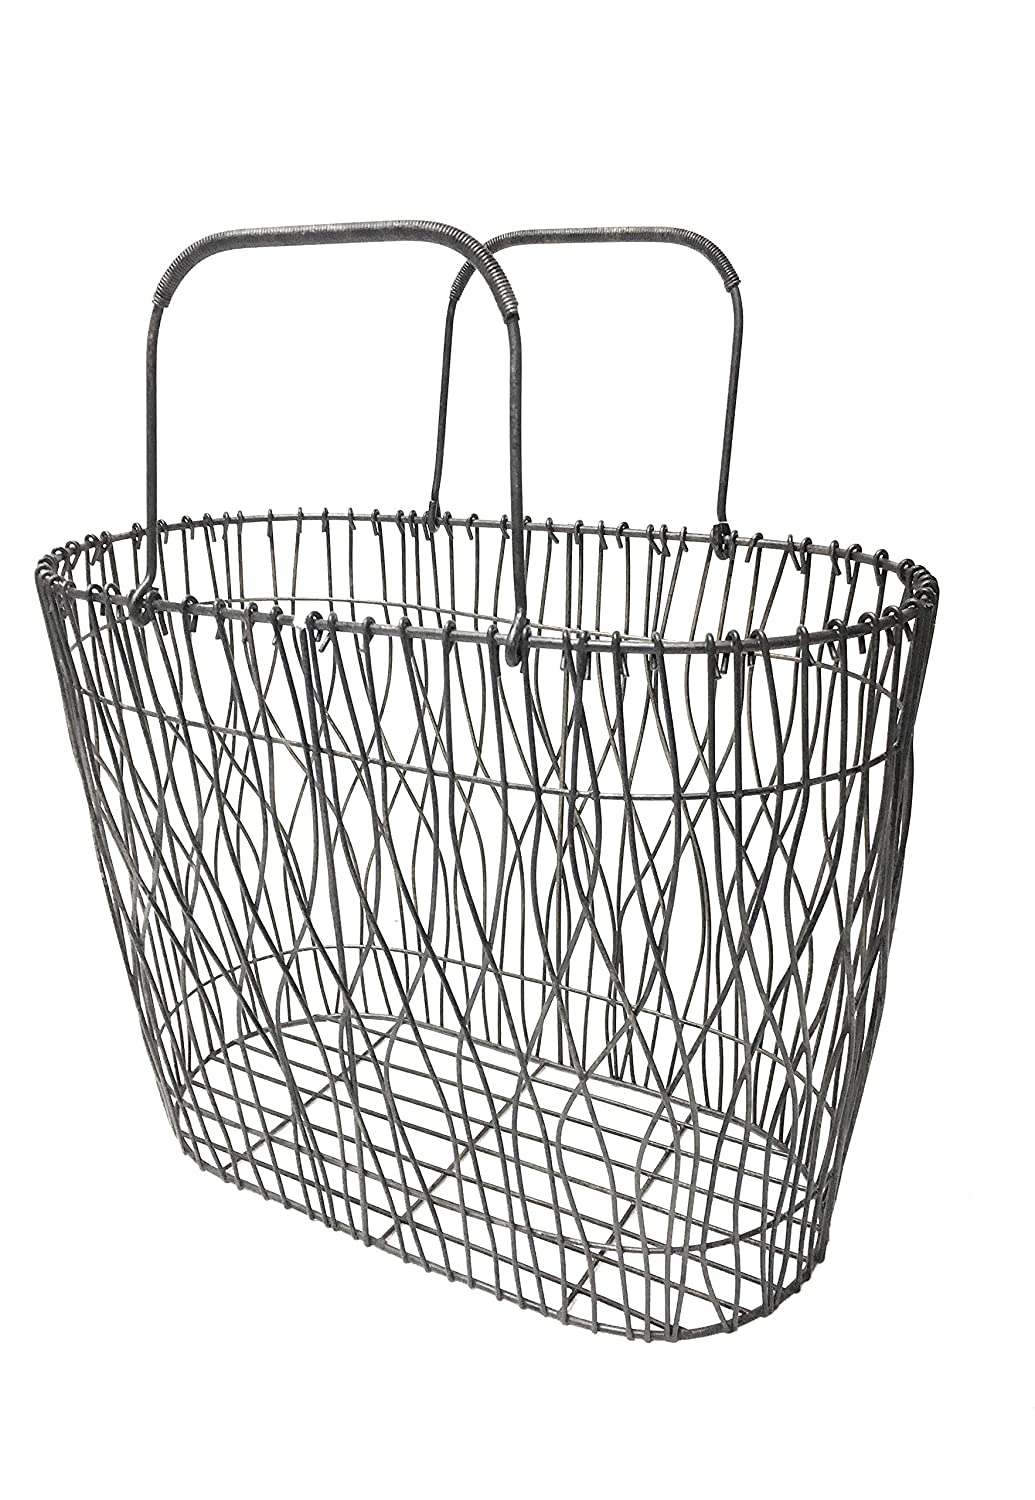 Cheap-Chic Decor Decorative Metal Wire Magazine Holder Basket